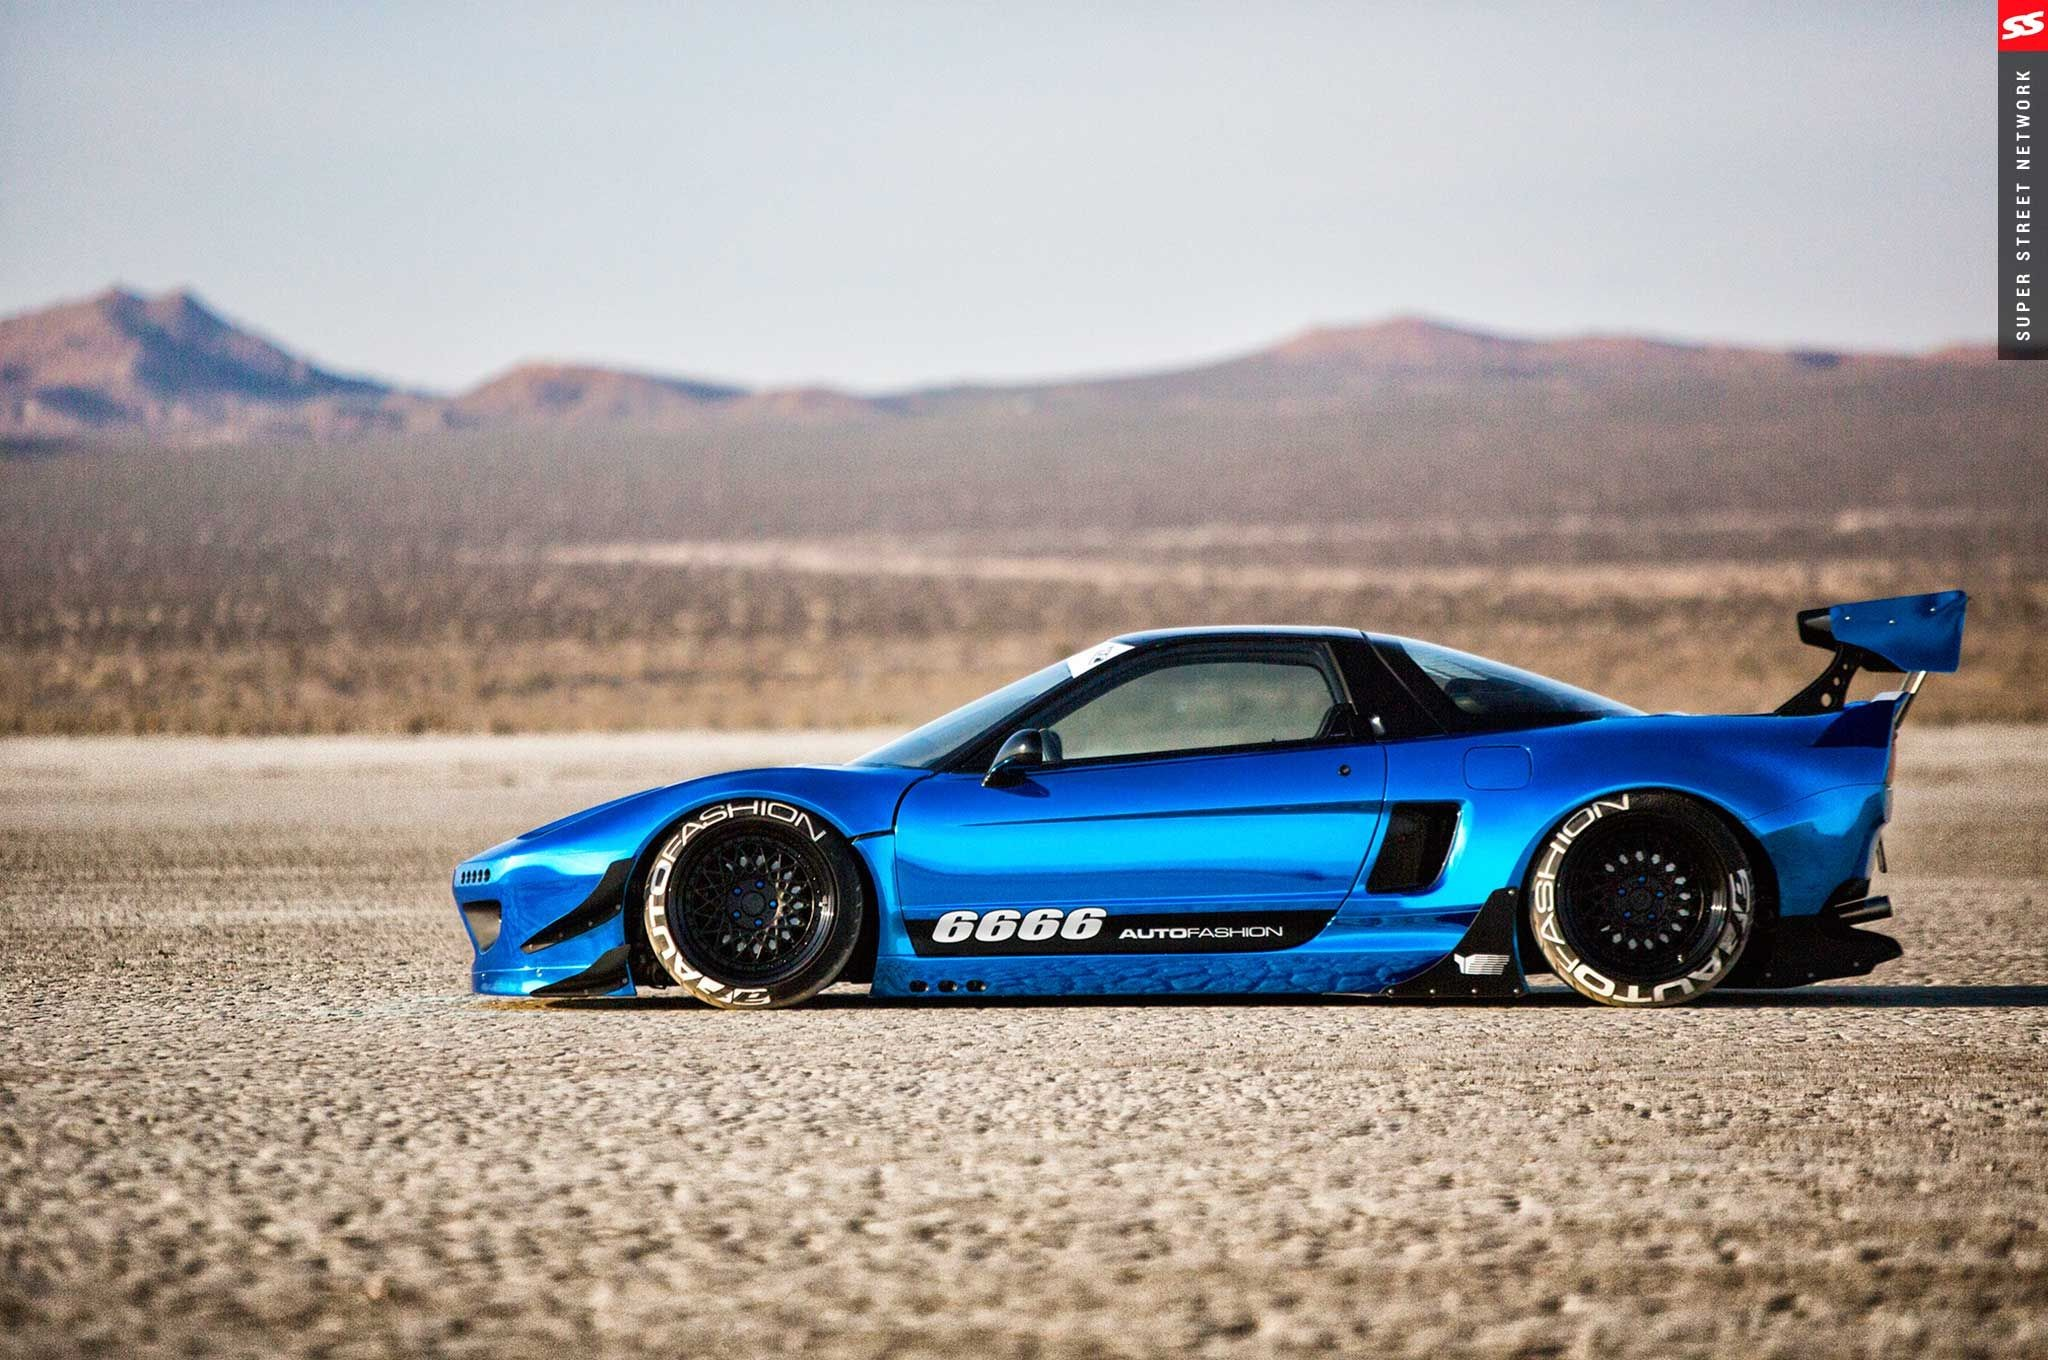 Res: 2048x1360, ... 1992 acura nsx rocket bunny side skirts ...